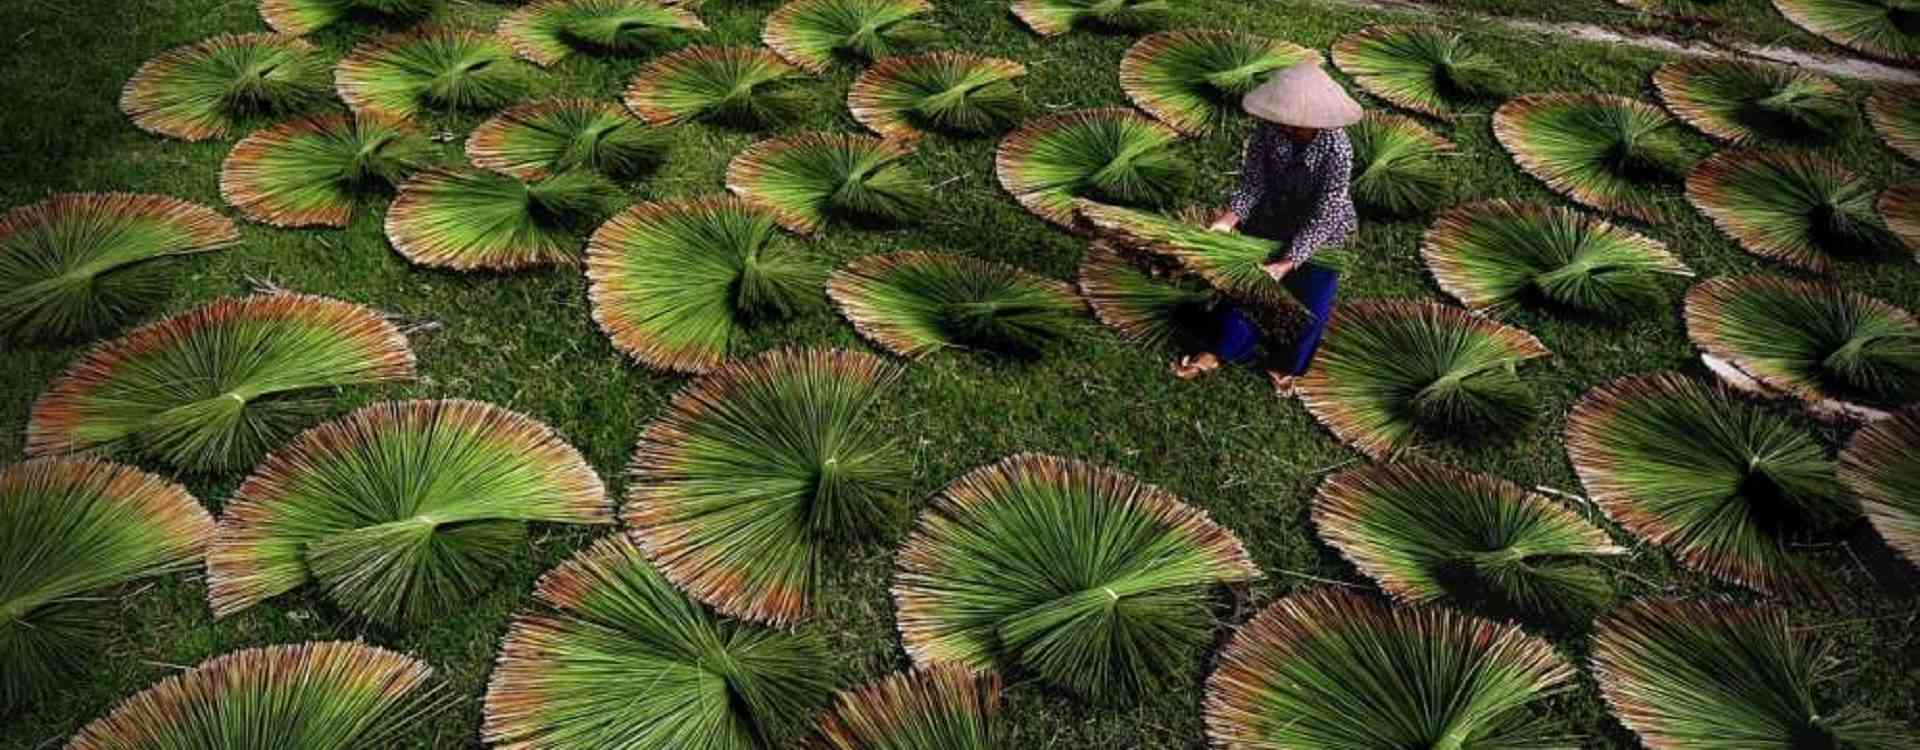 seagrass drying